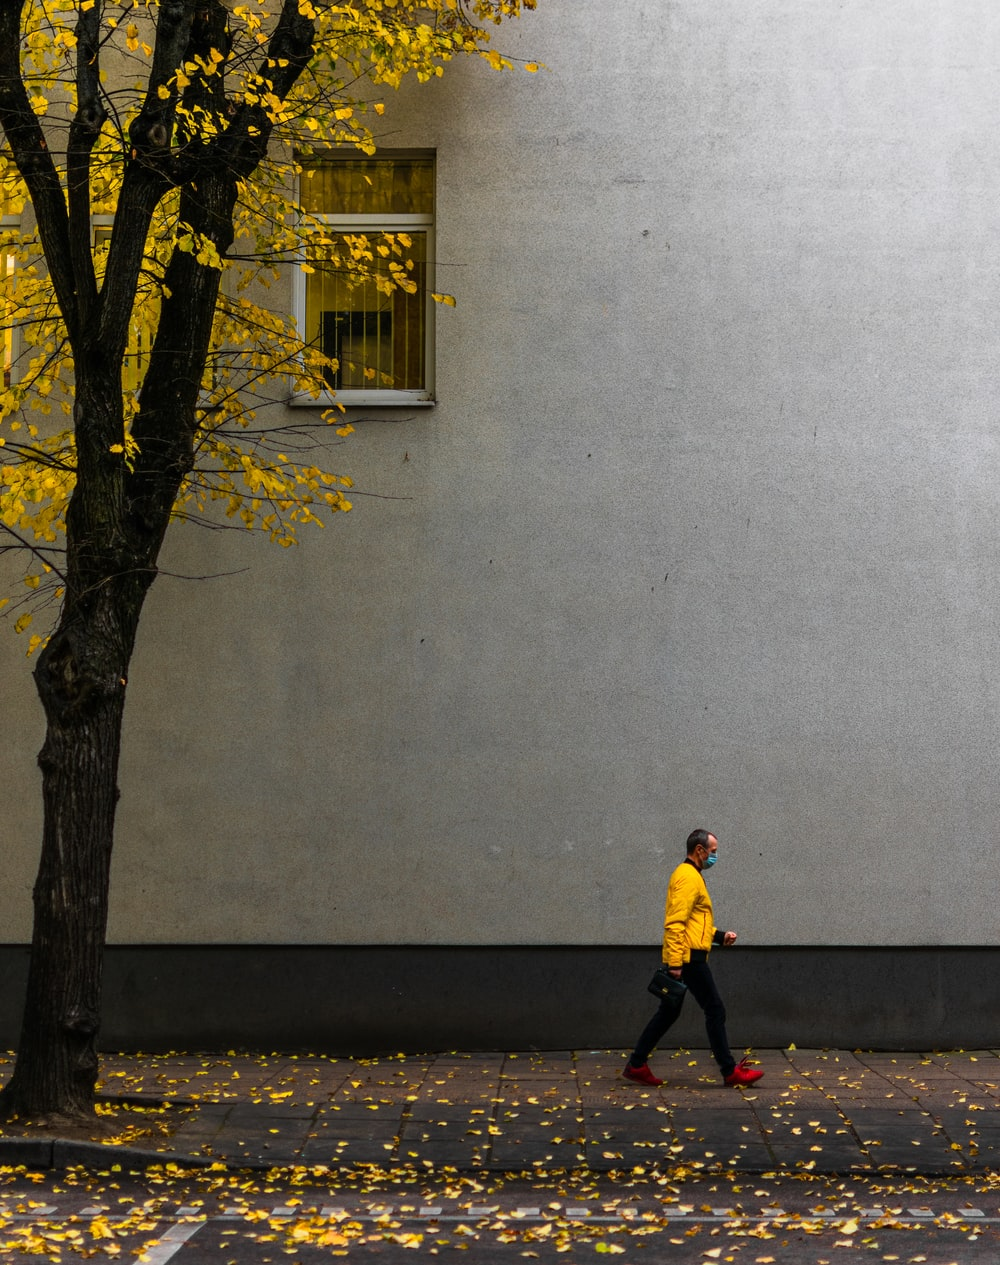 man in yellow jacket and black pants standing beside tree